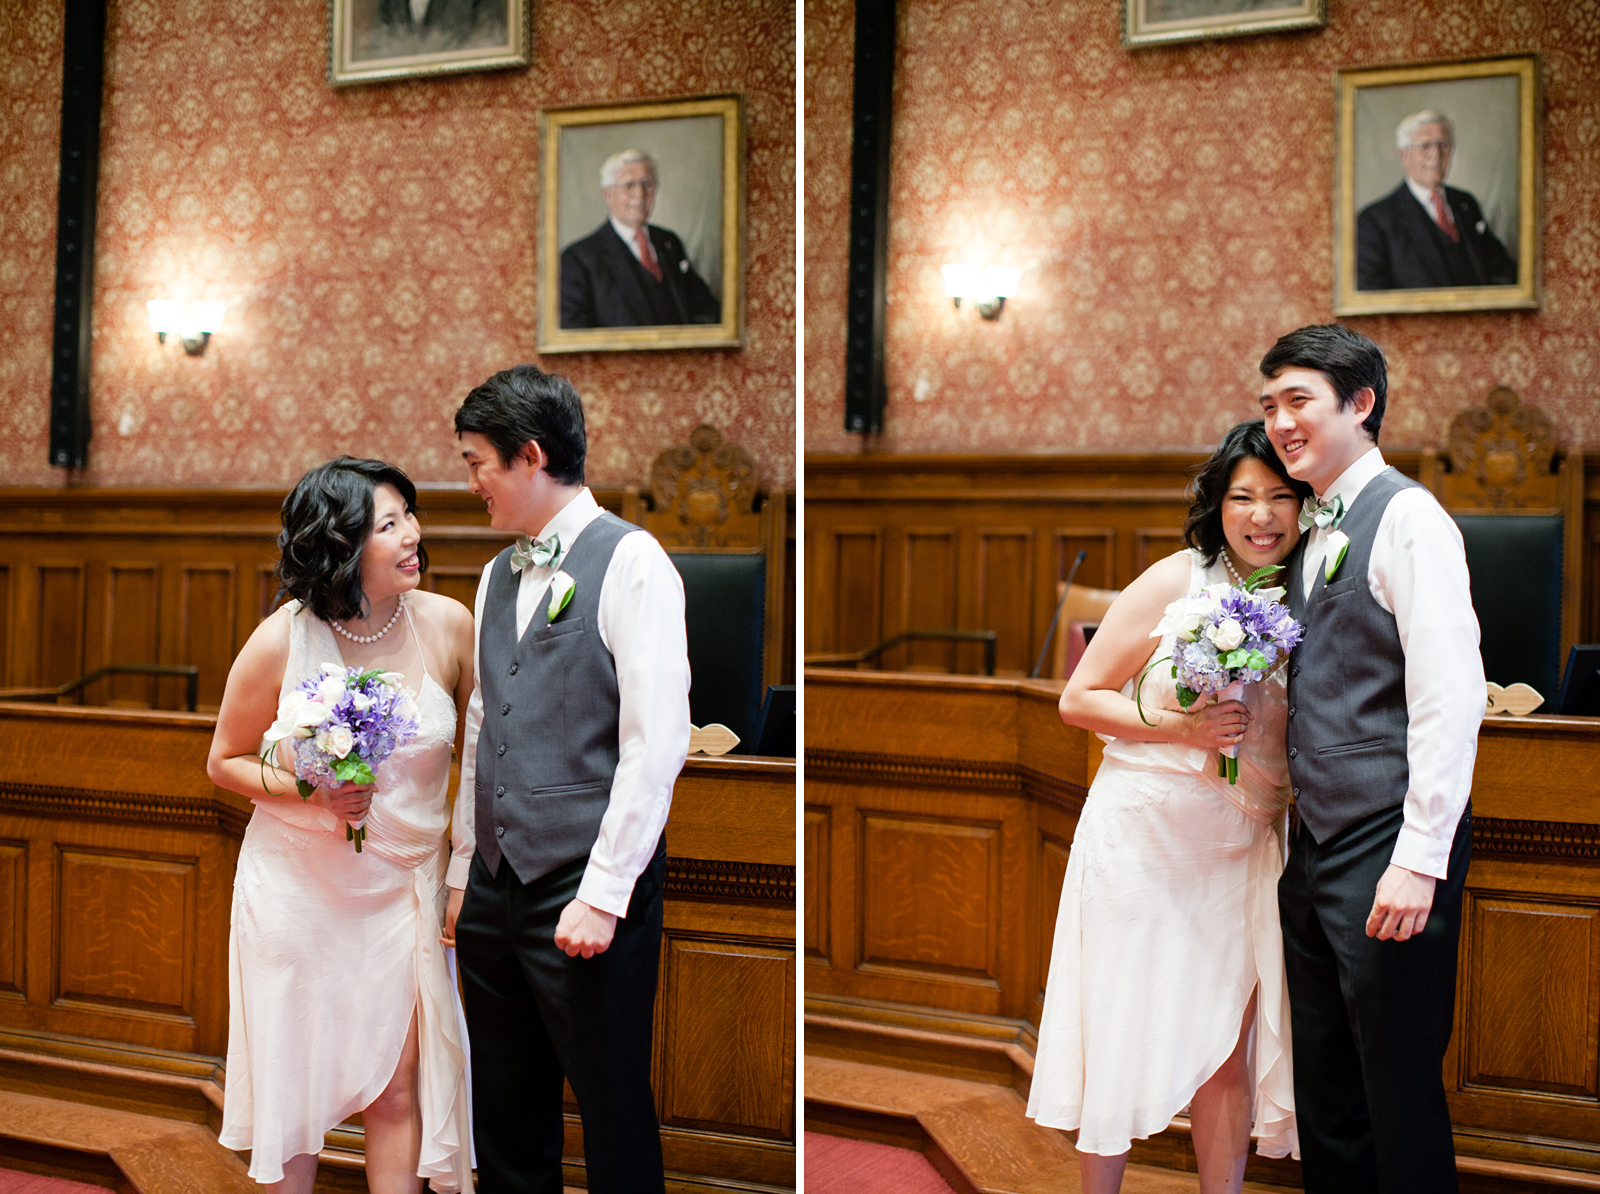 cambridge elopement at city hall